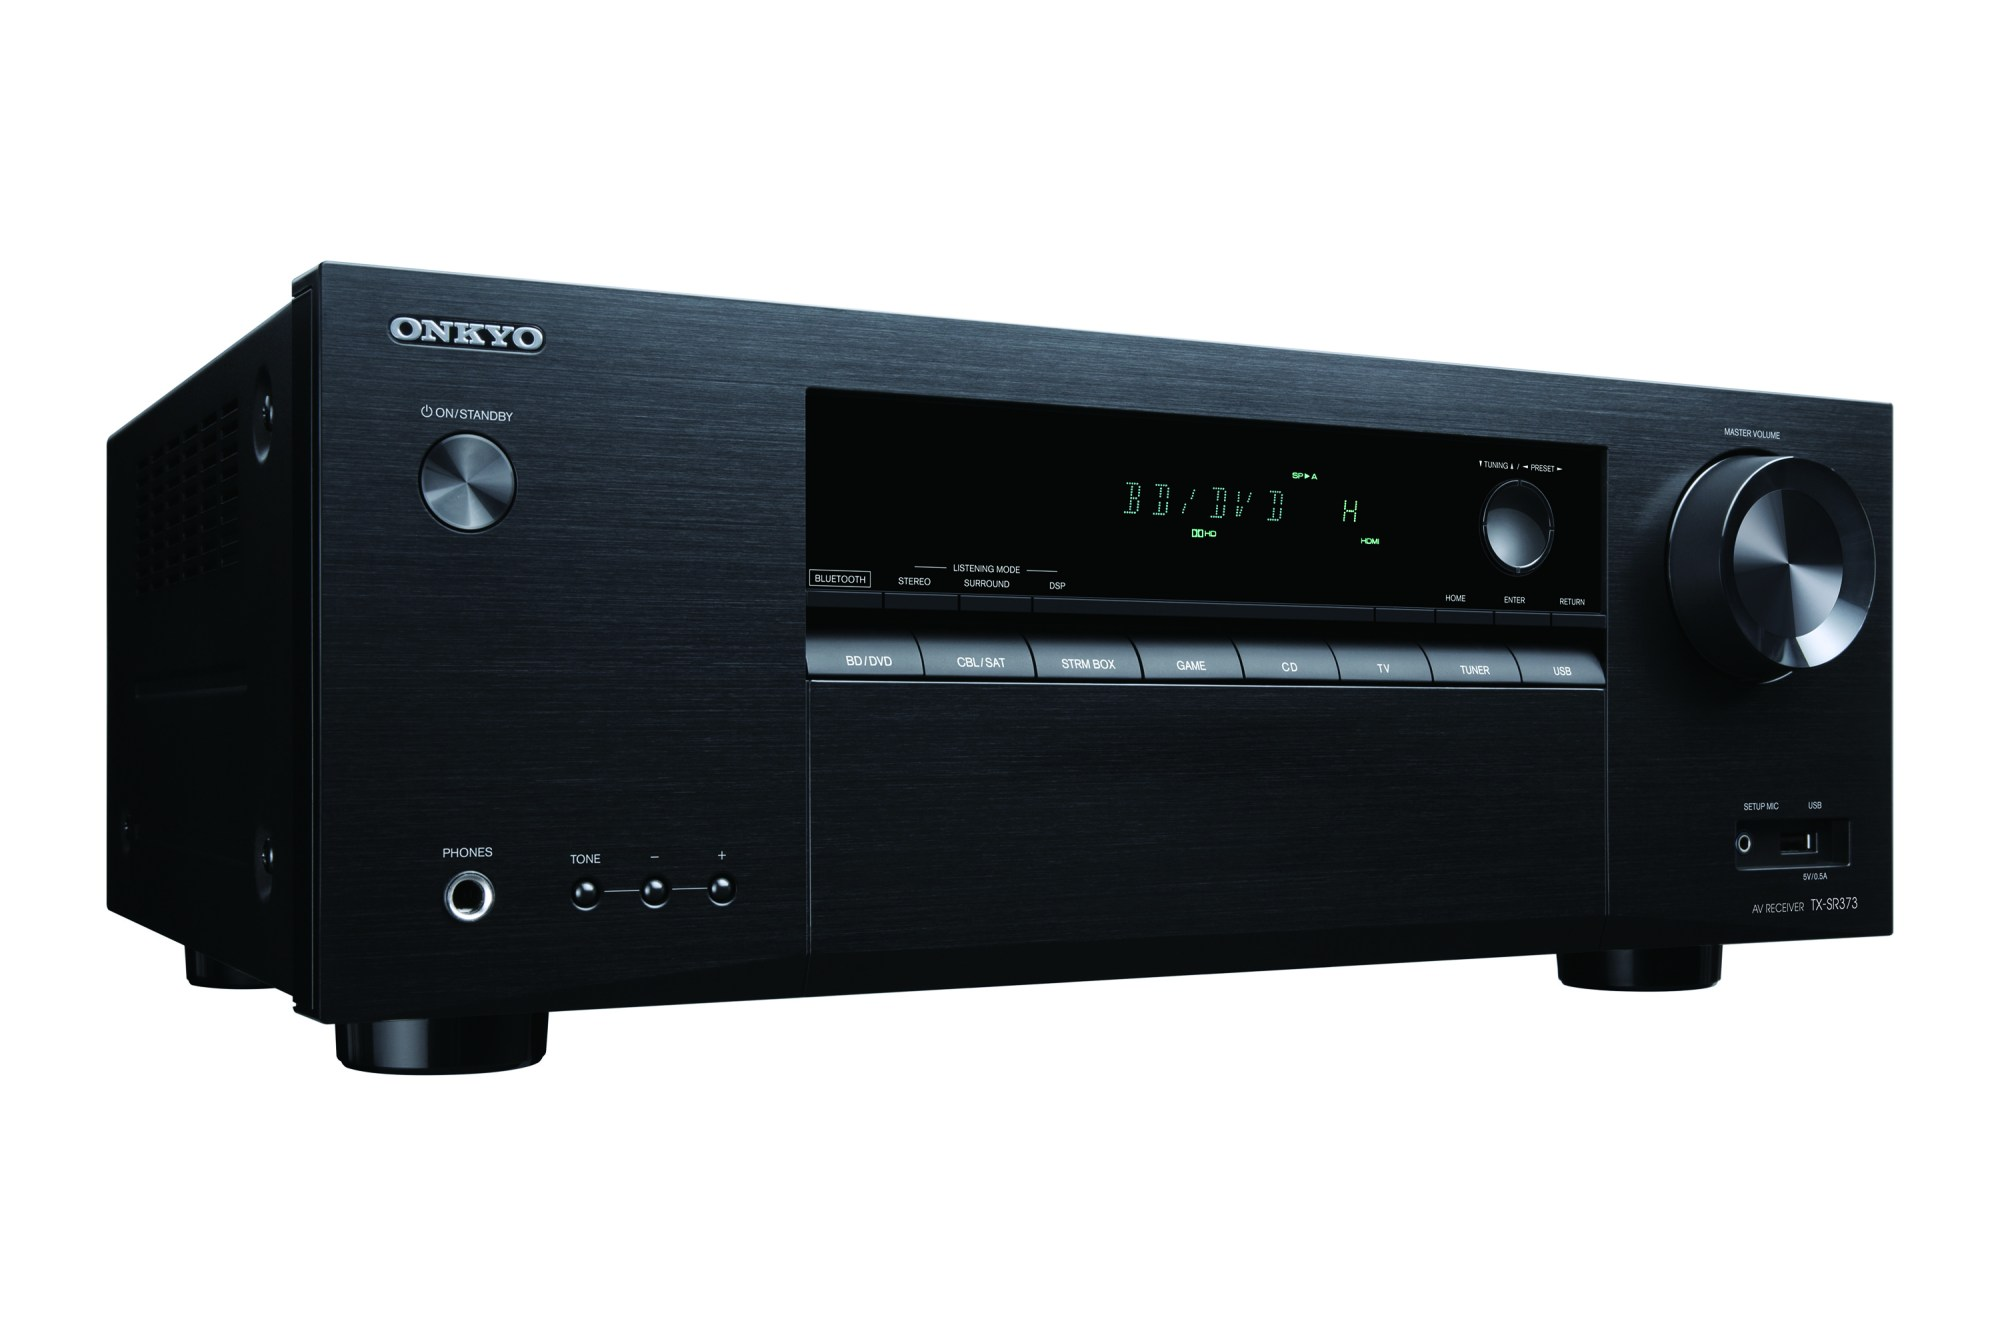 hight resolution of wrg 6760 onkyo wiring diagram onkyo home theater wiring diagram onkyo wiring diagram